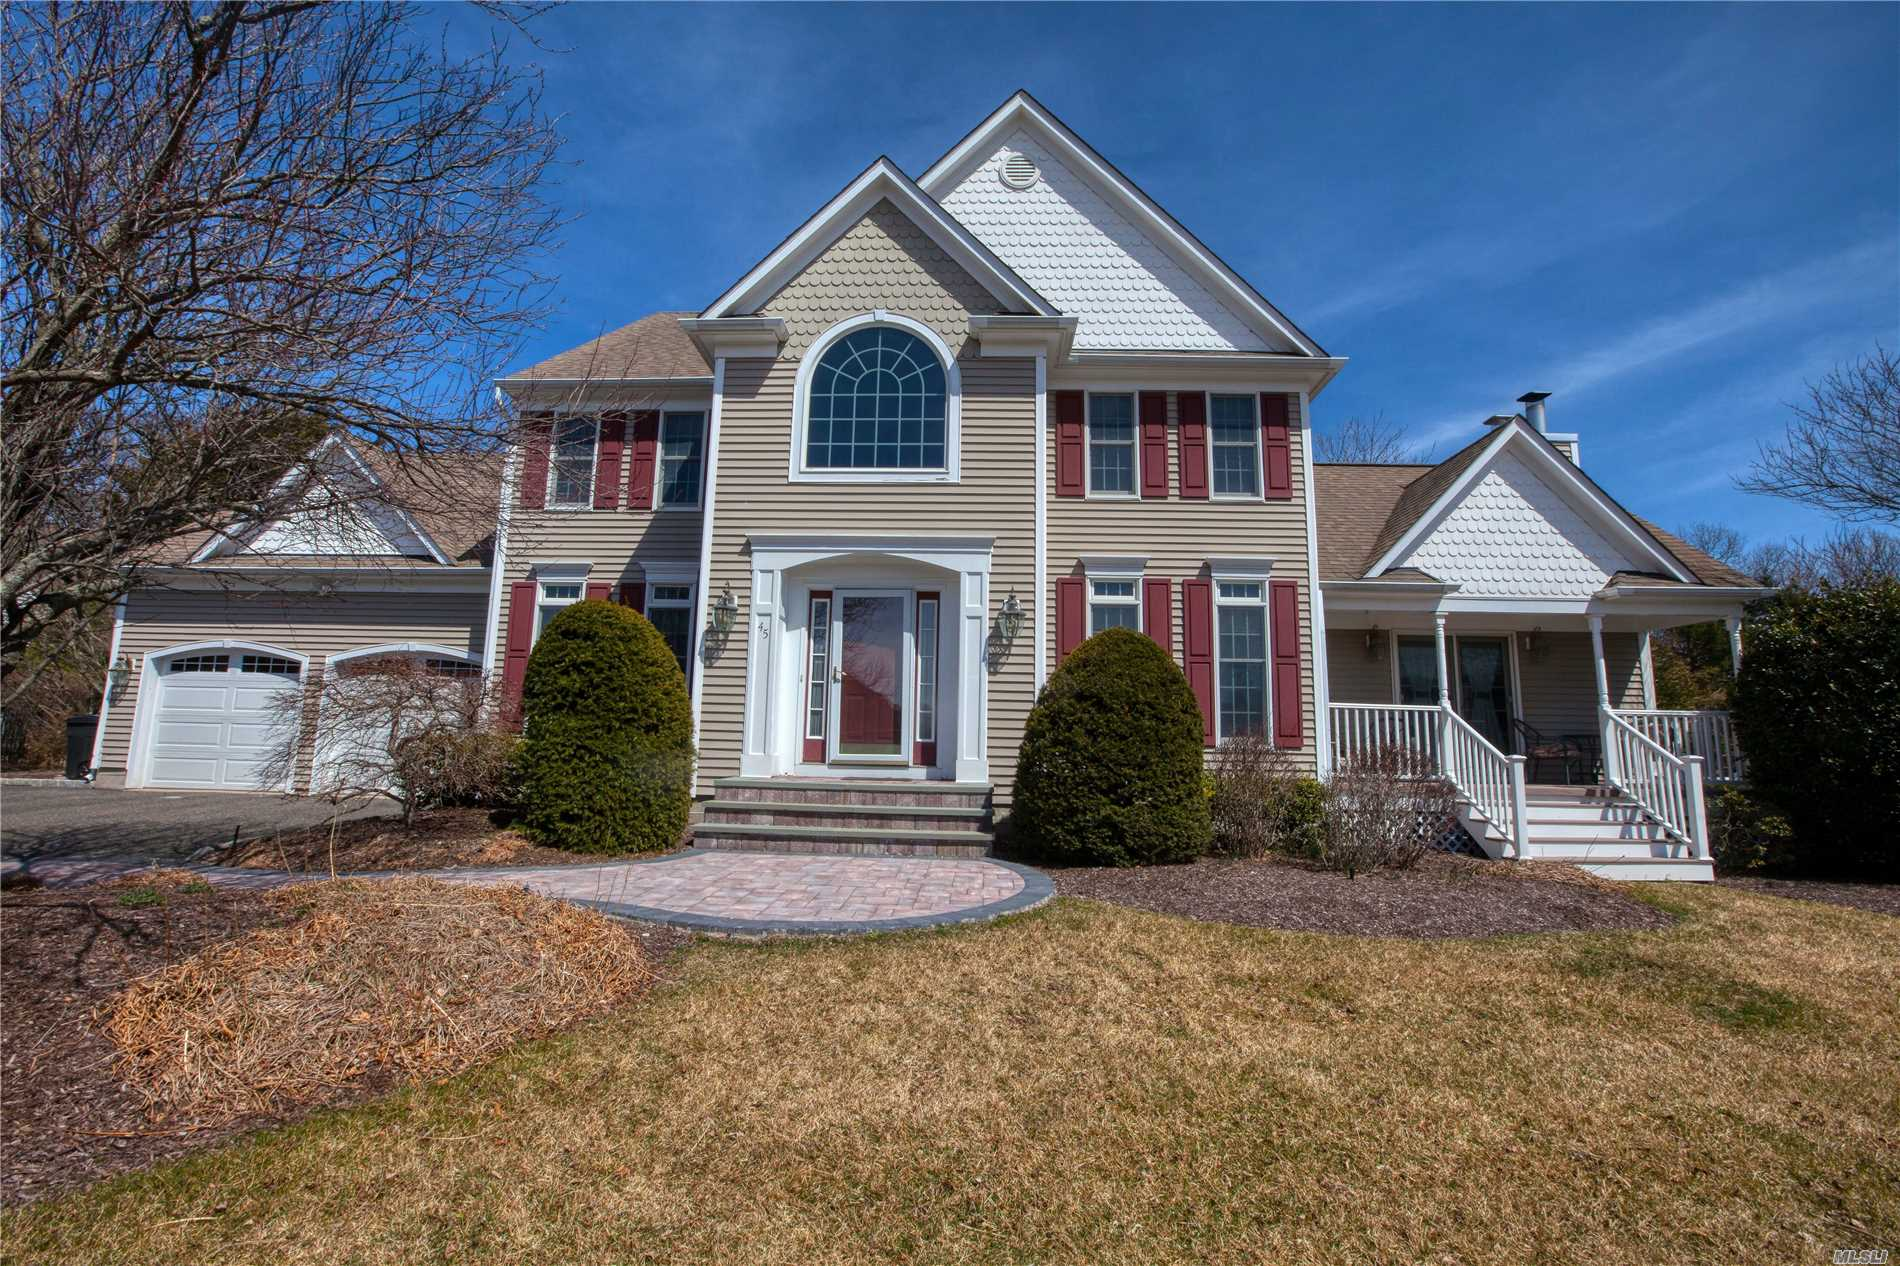 Beautiful custom Bill Hynes 4 br/ 3.5 bath Colonial on great family friendly area. Home has so much to offer inc 2 car gar, W/D on mail level, den w hi ceilings/skylites, fpl and entry to priv porch. EIK with quartz ctps and island, double ovens, Mstr bath/Jac w double sinks and hi ceilings. Anderson wndws,  Newer furnace, cesspools, chimney, CAC, & gar drs, State of the art ffbsmt playrm, 1/2 bath, with granite bar. salt water pool with newer lining, looplock, and waterfall. Call today!